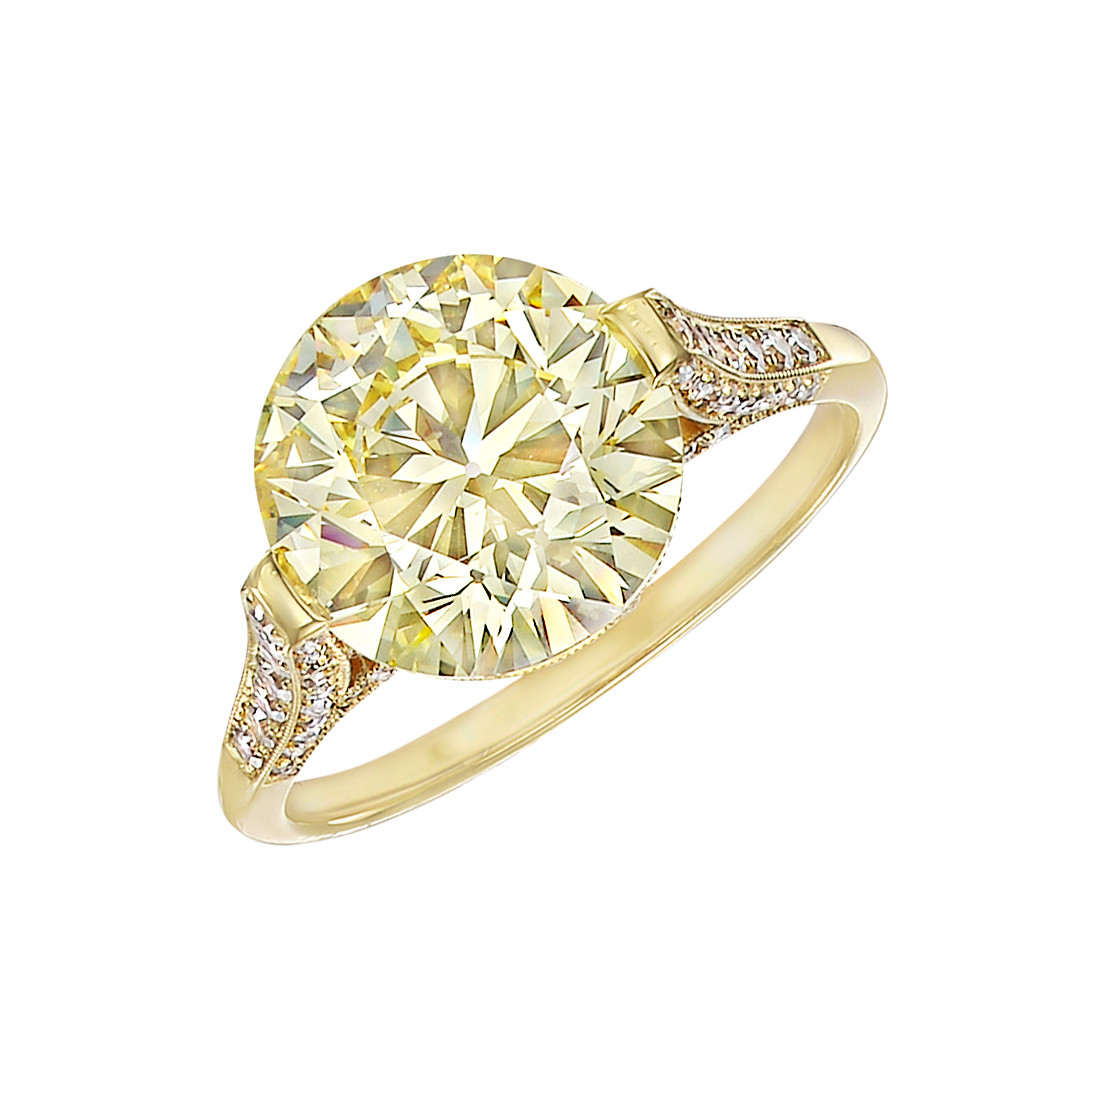 4.62ct Fancy Yellow Diamond Ring (VVS2)